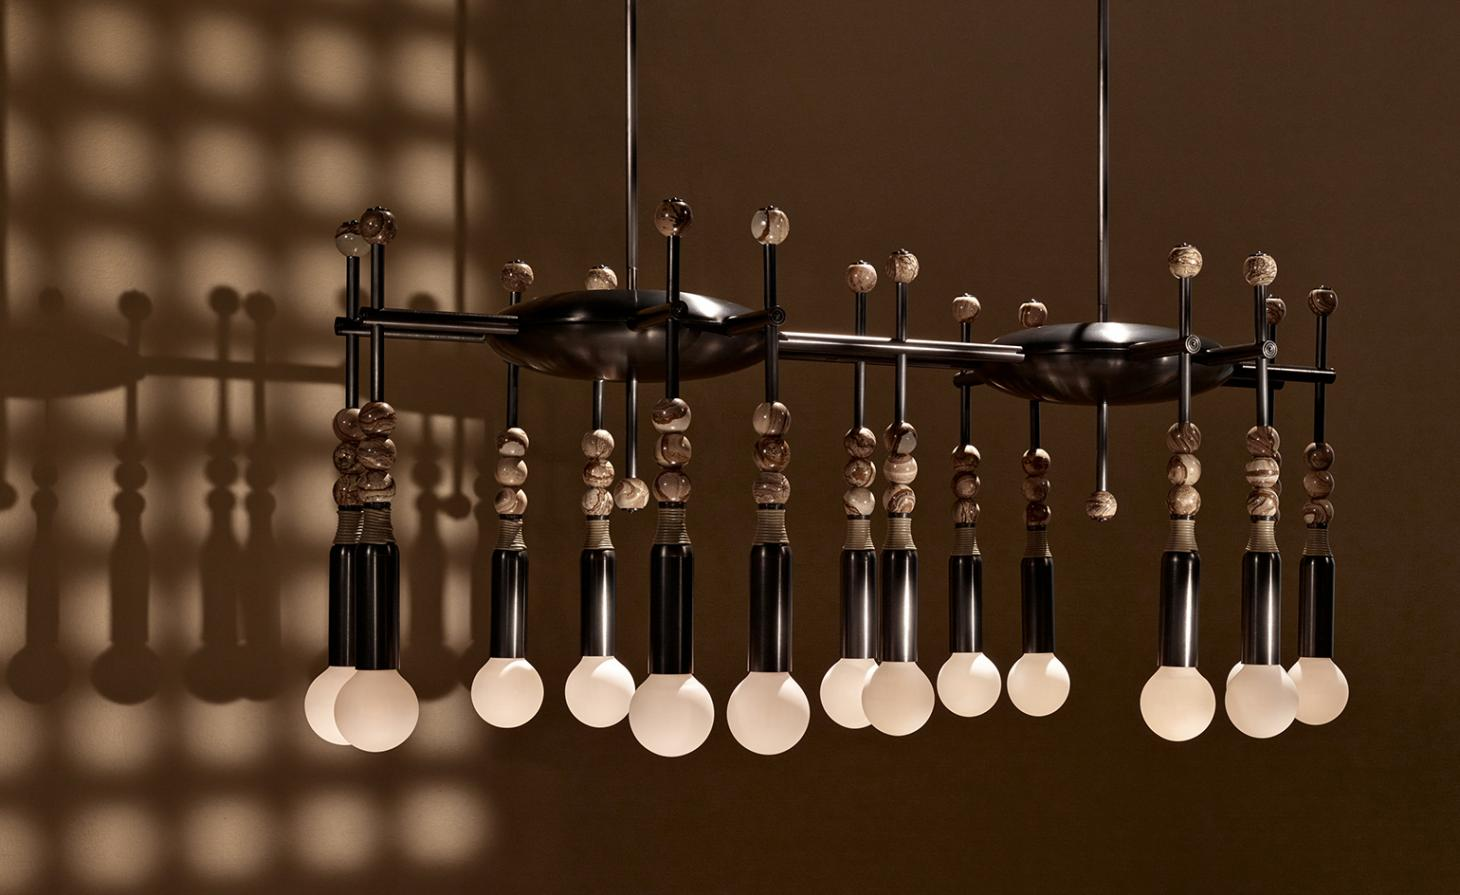 Talisman pendant by Apparatus Studio Act ii